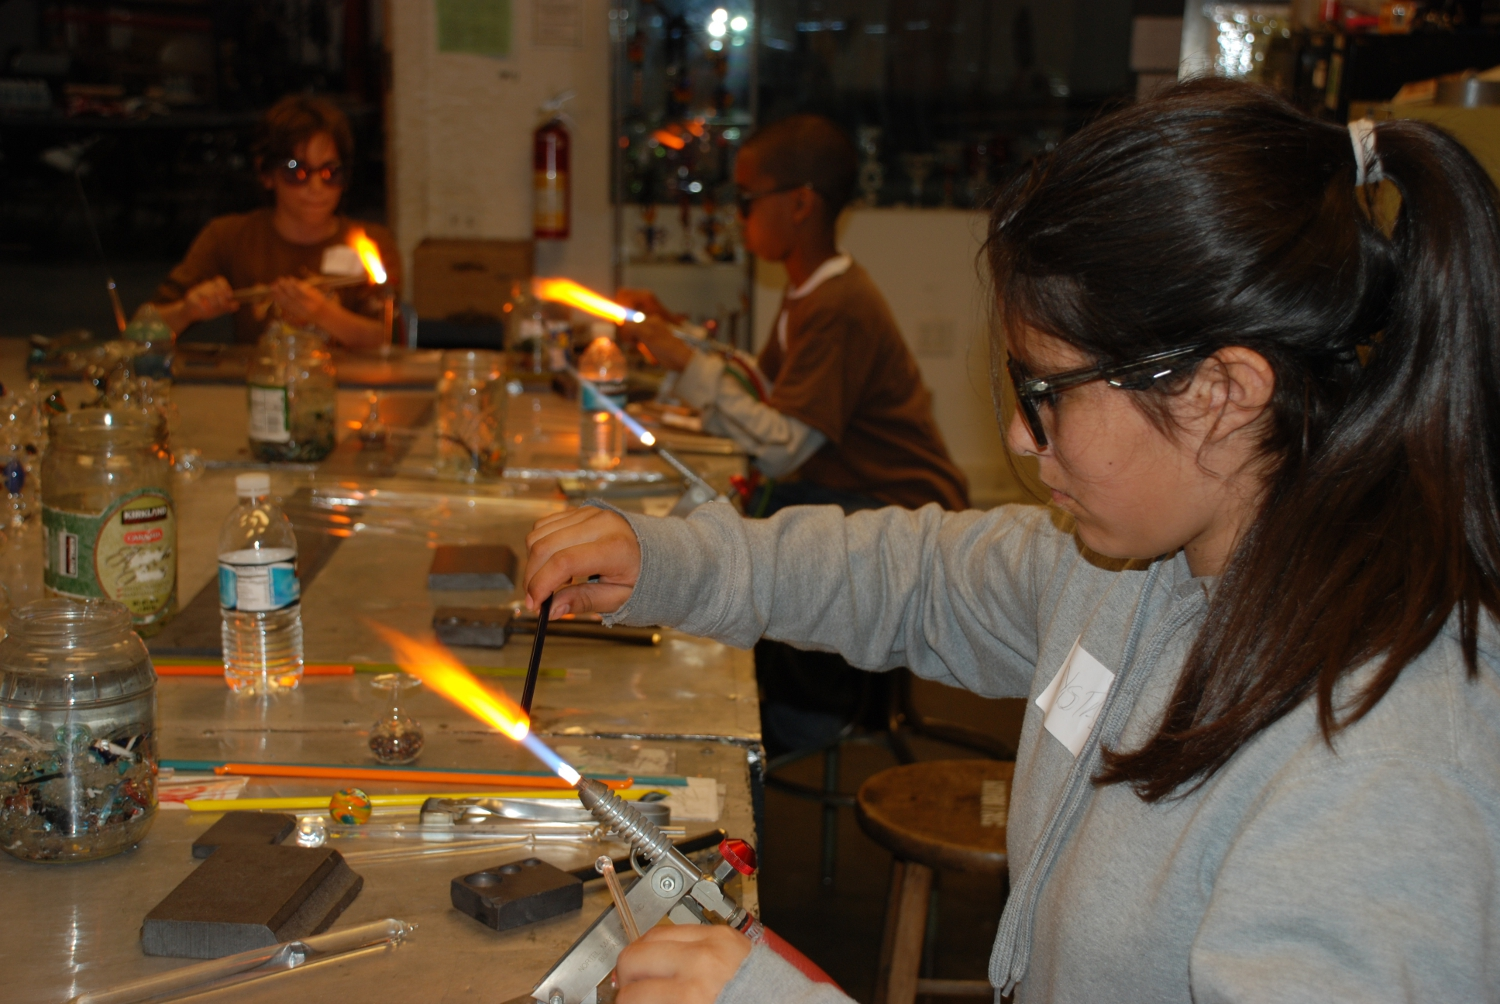 bay area industrial arts school  the crucible  features youth leadership and internship program